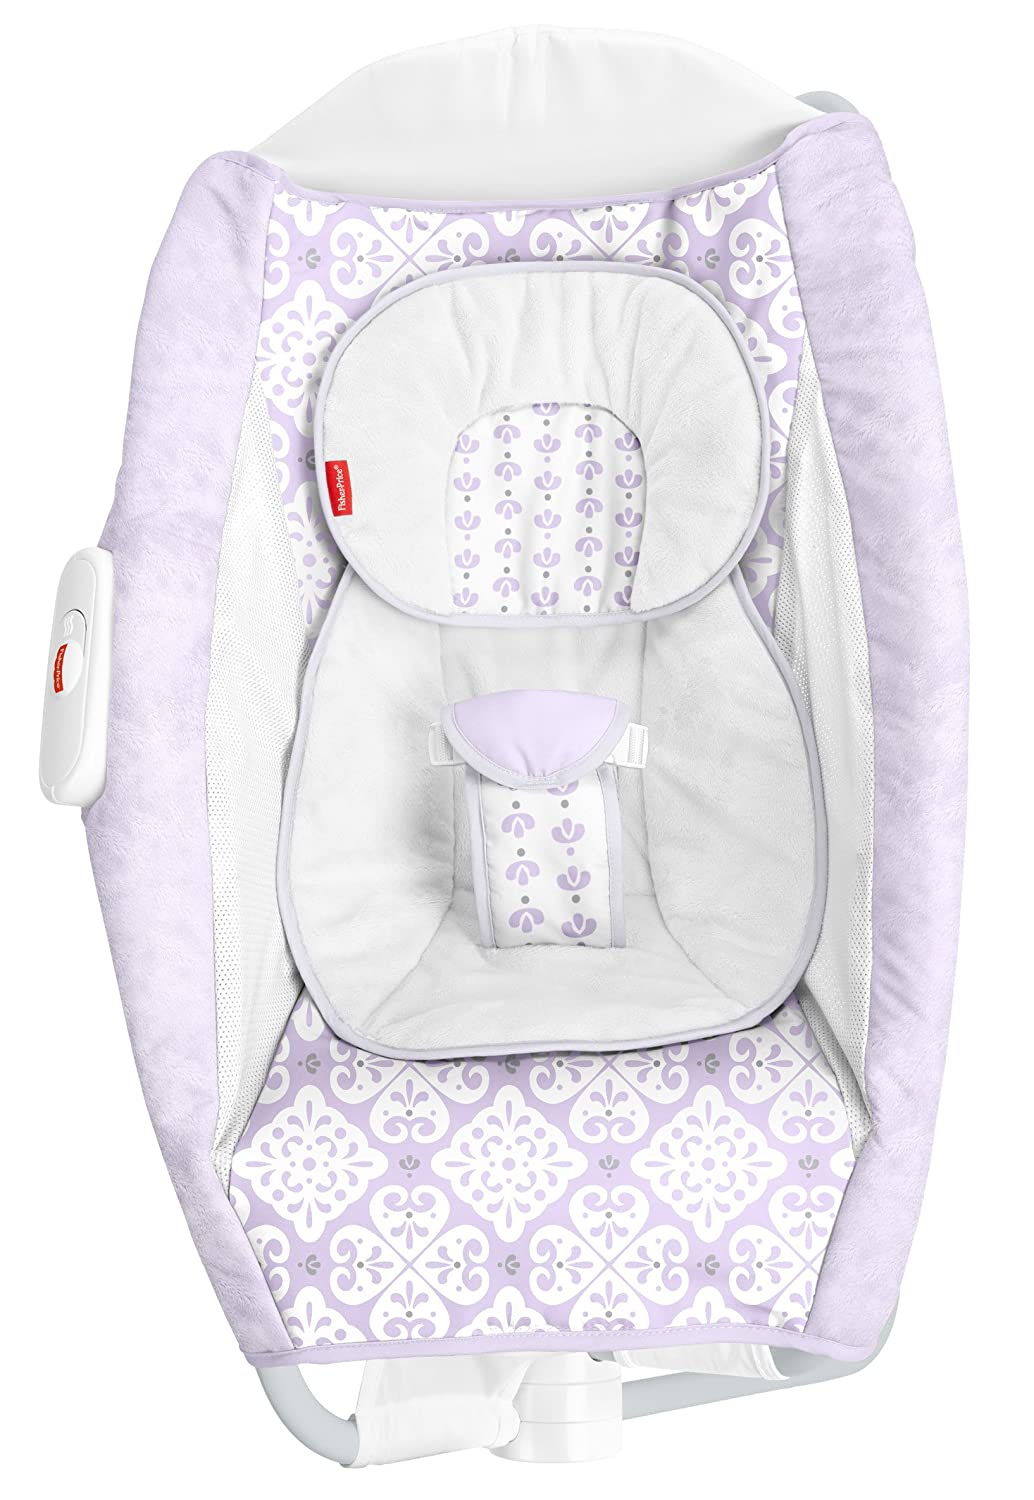 Amazon Com Fisher Price Deluxe Rock N Play Sleeper Purple White